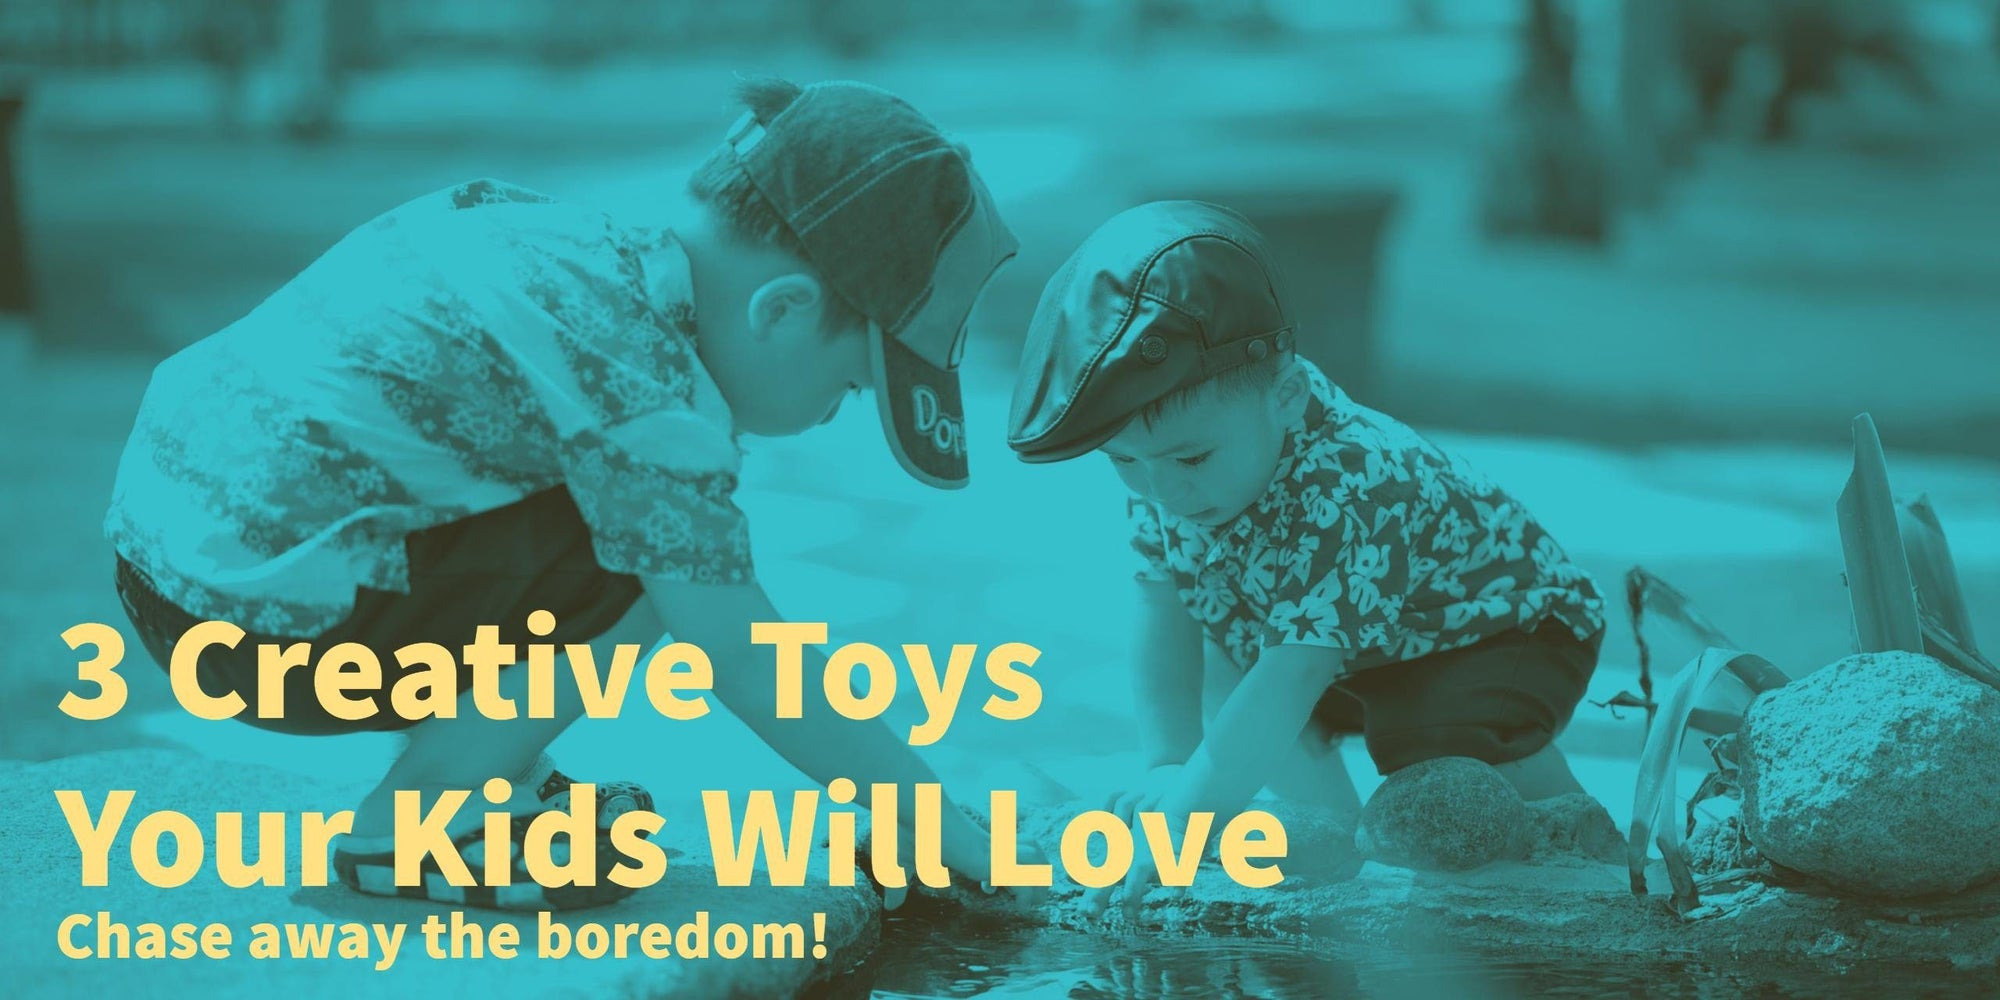 3 Creative Toys to Keep Your Kids Busy